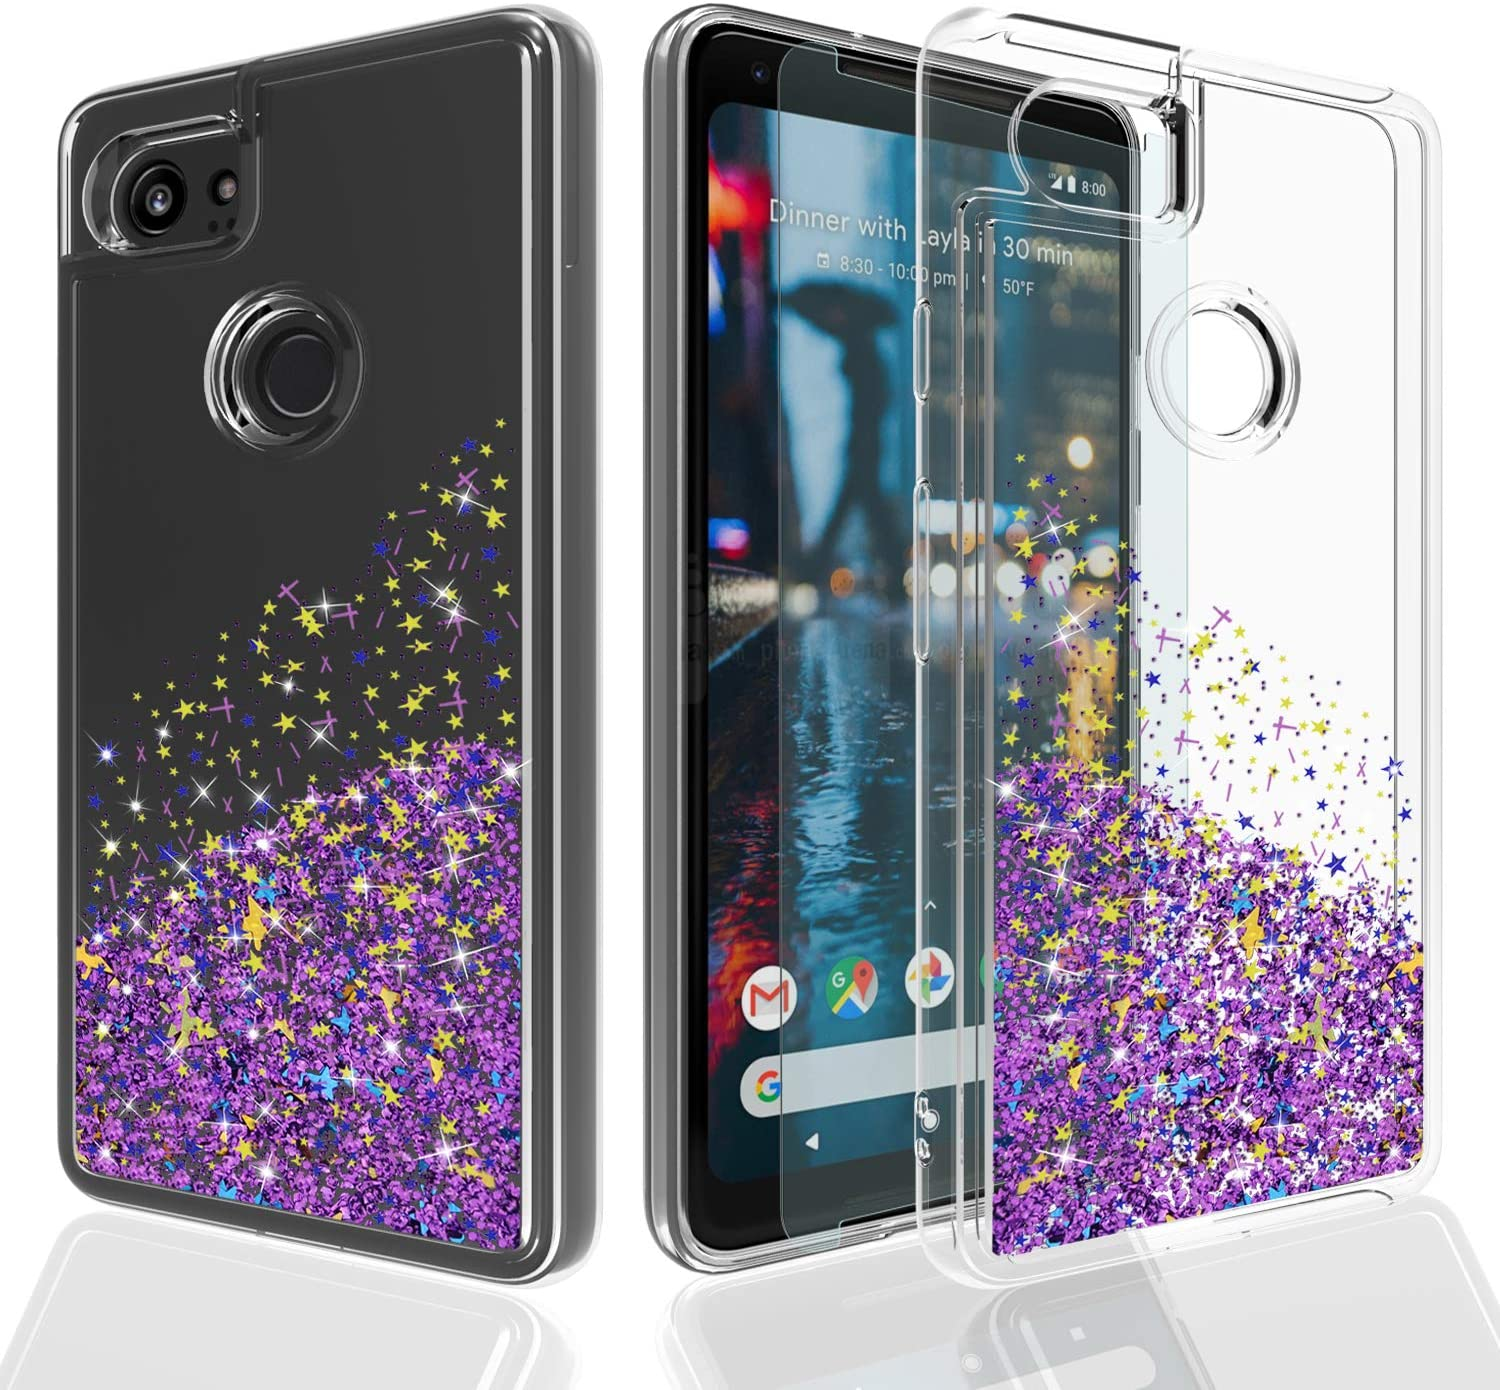 Pixel 2 XL Case,Google Pixel 2 XL Case,Google Pixel 2 XL Phone Cases with HD Screen Protector,Ayoo Teen Girls Women Bling Liquid Luxury Glitter Sparkle Soft TPU+PC Case for Google Pixel 2 XL-XX Purple